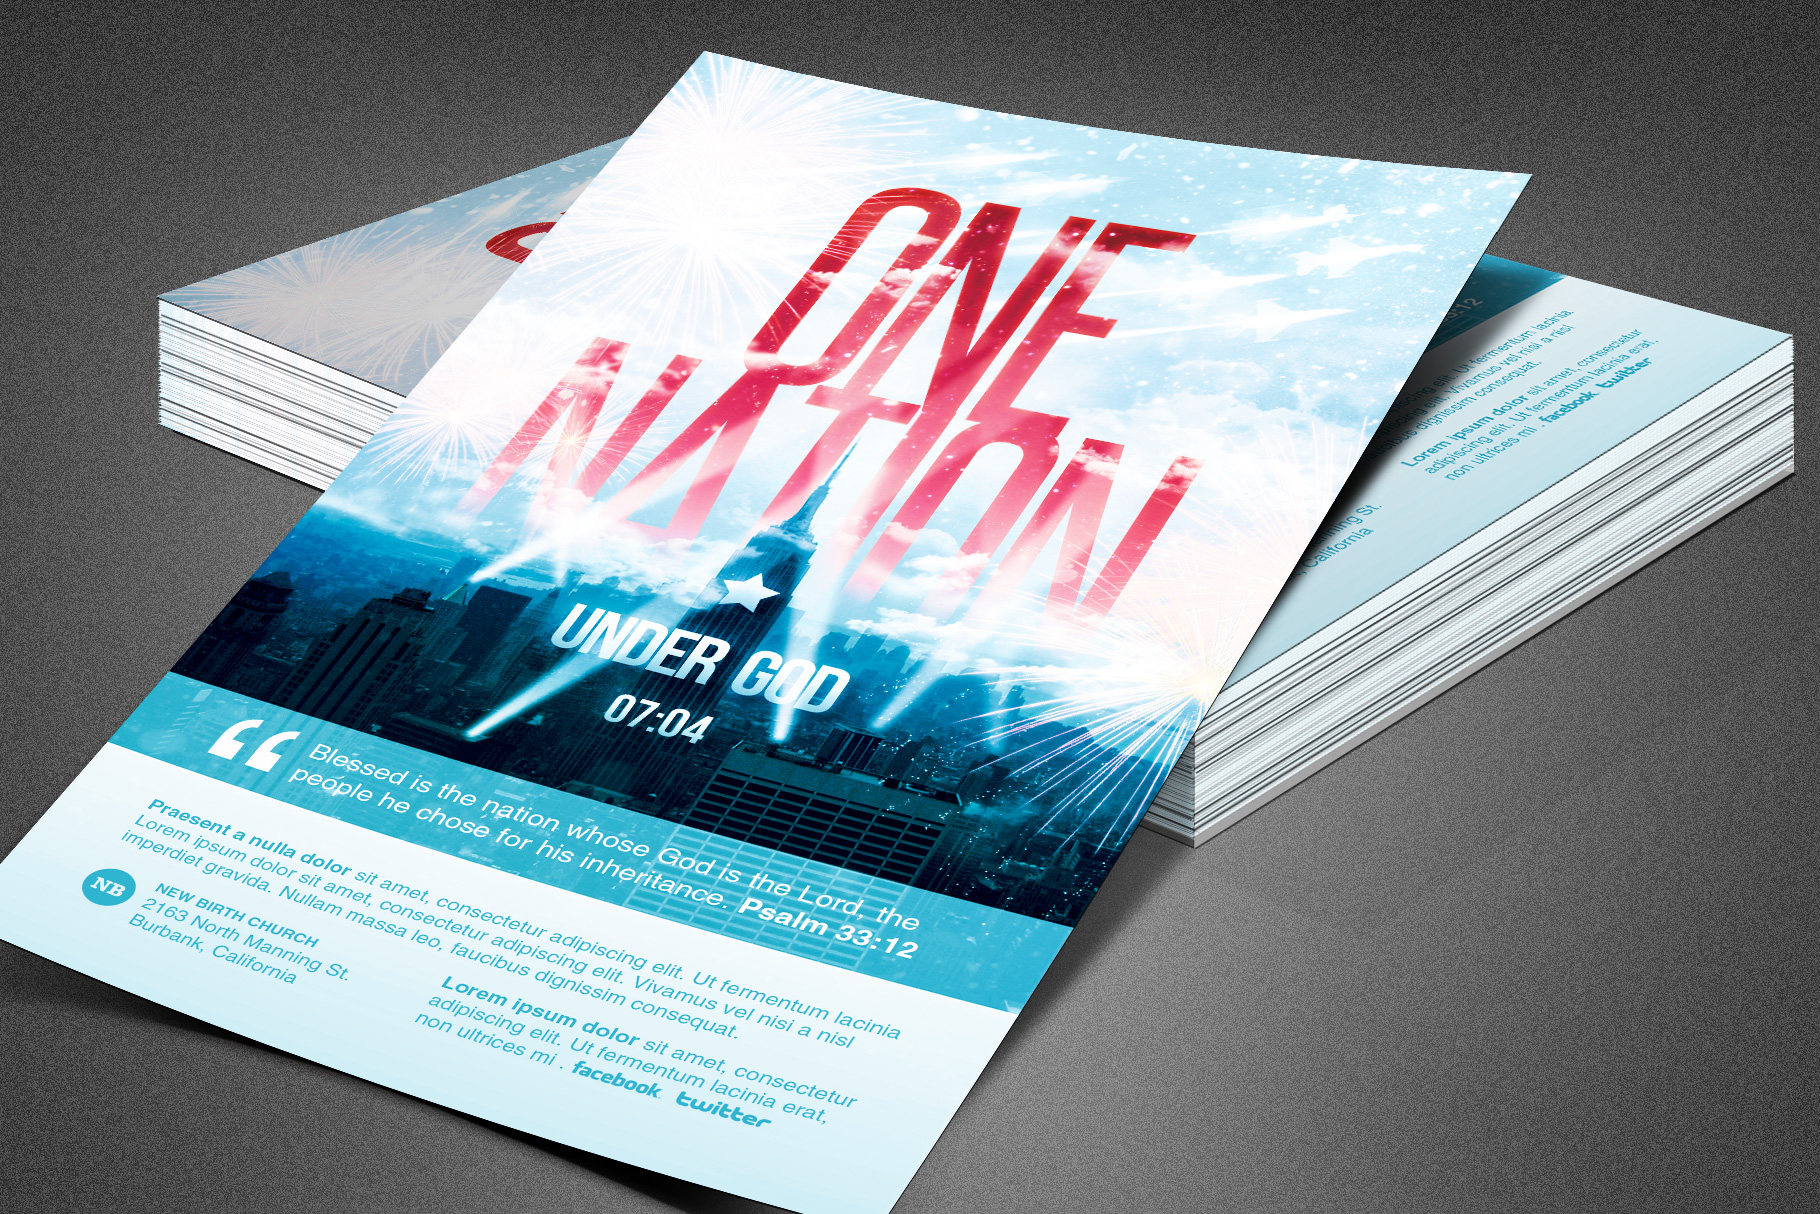 One Nation Under God Flyer Template example image 1